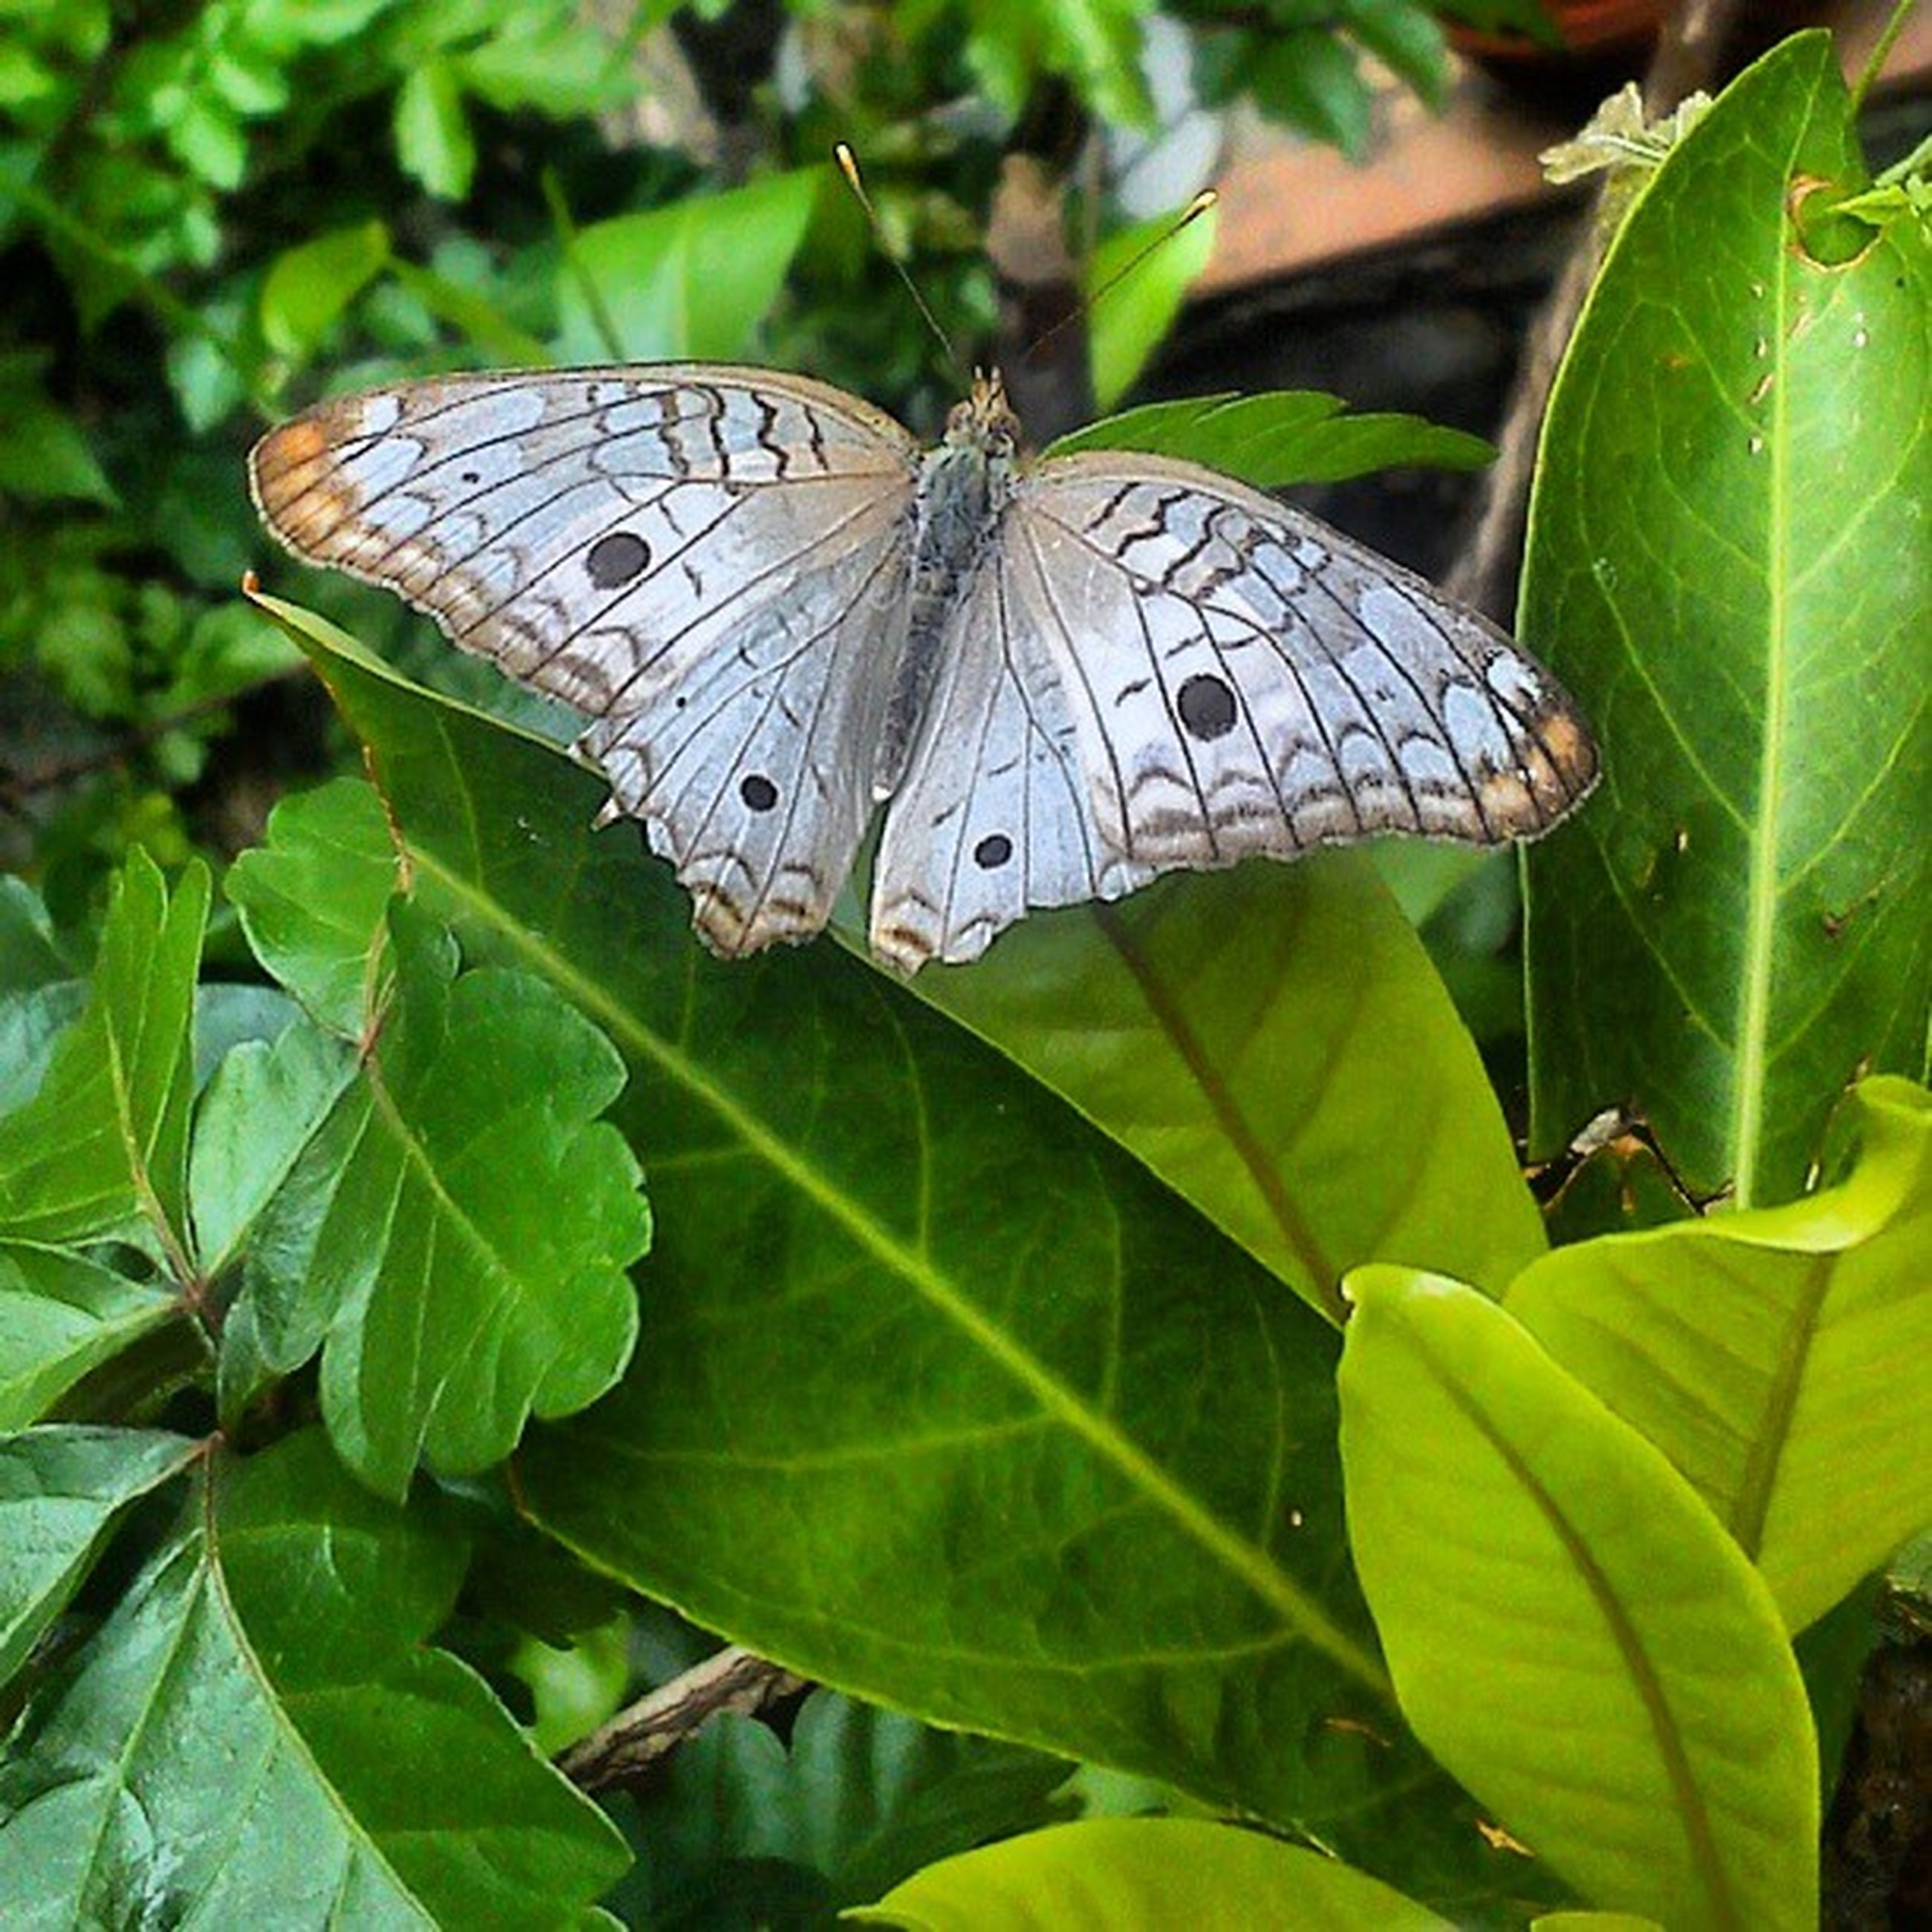 animals in the wild, insect, one animal, butterfly - insect, wildlife, animal themes, butterfly, leaf, animal wing, close-up, focus on foreground, green color, natural pattern, animal markings, plant, nature, animal antenna, beauty in nature, day, moth